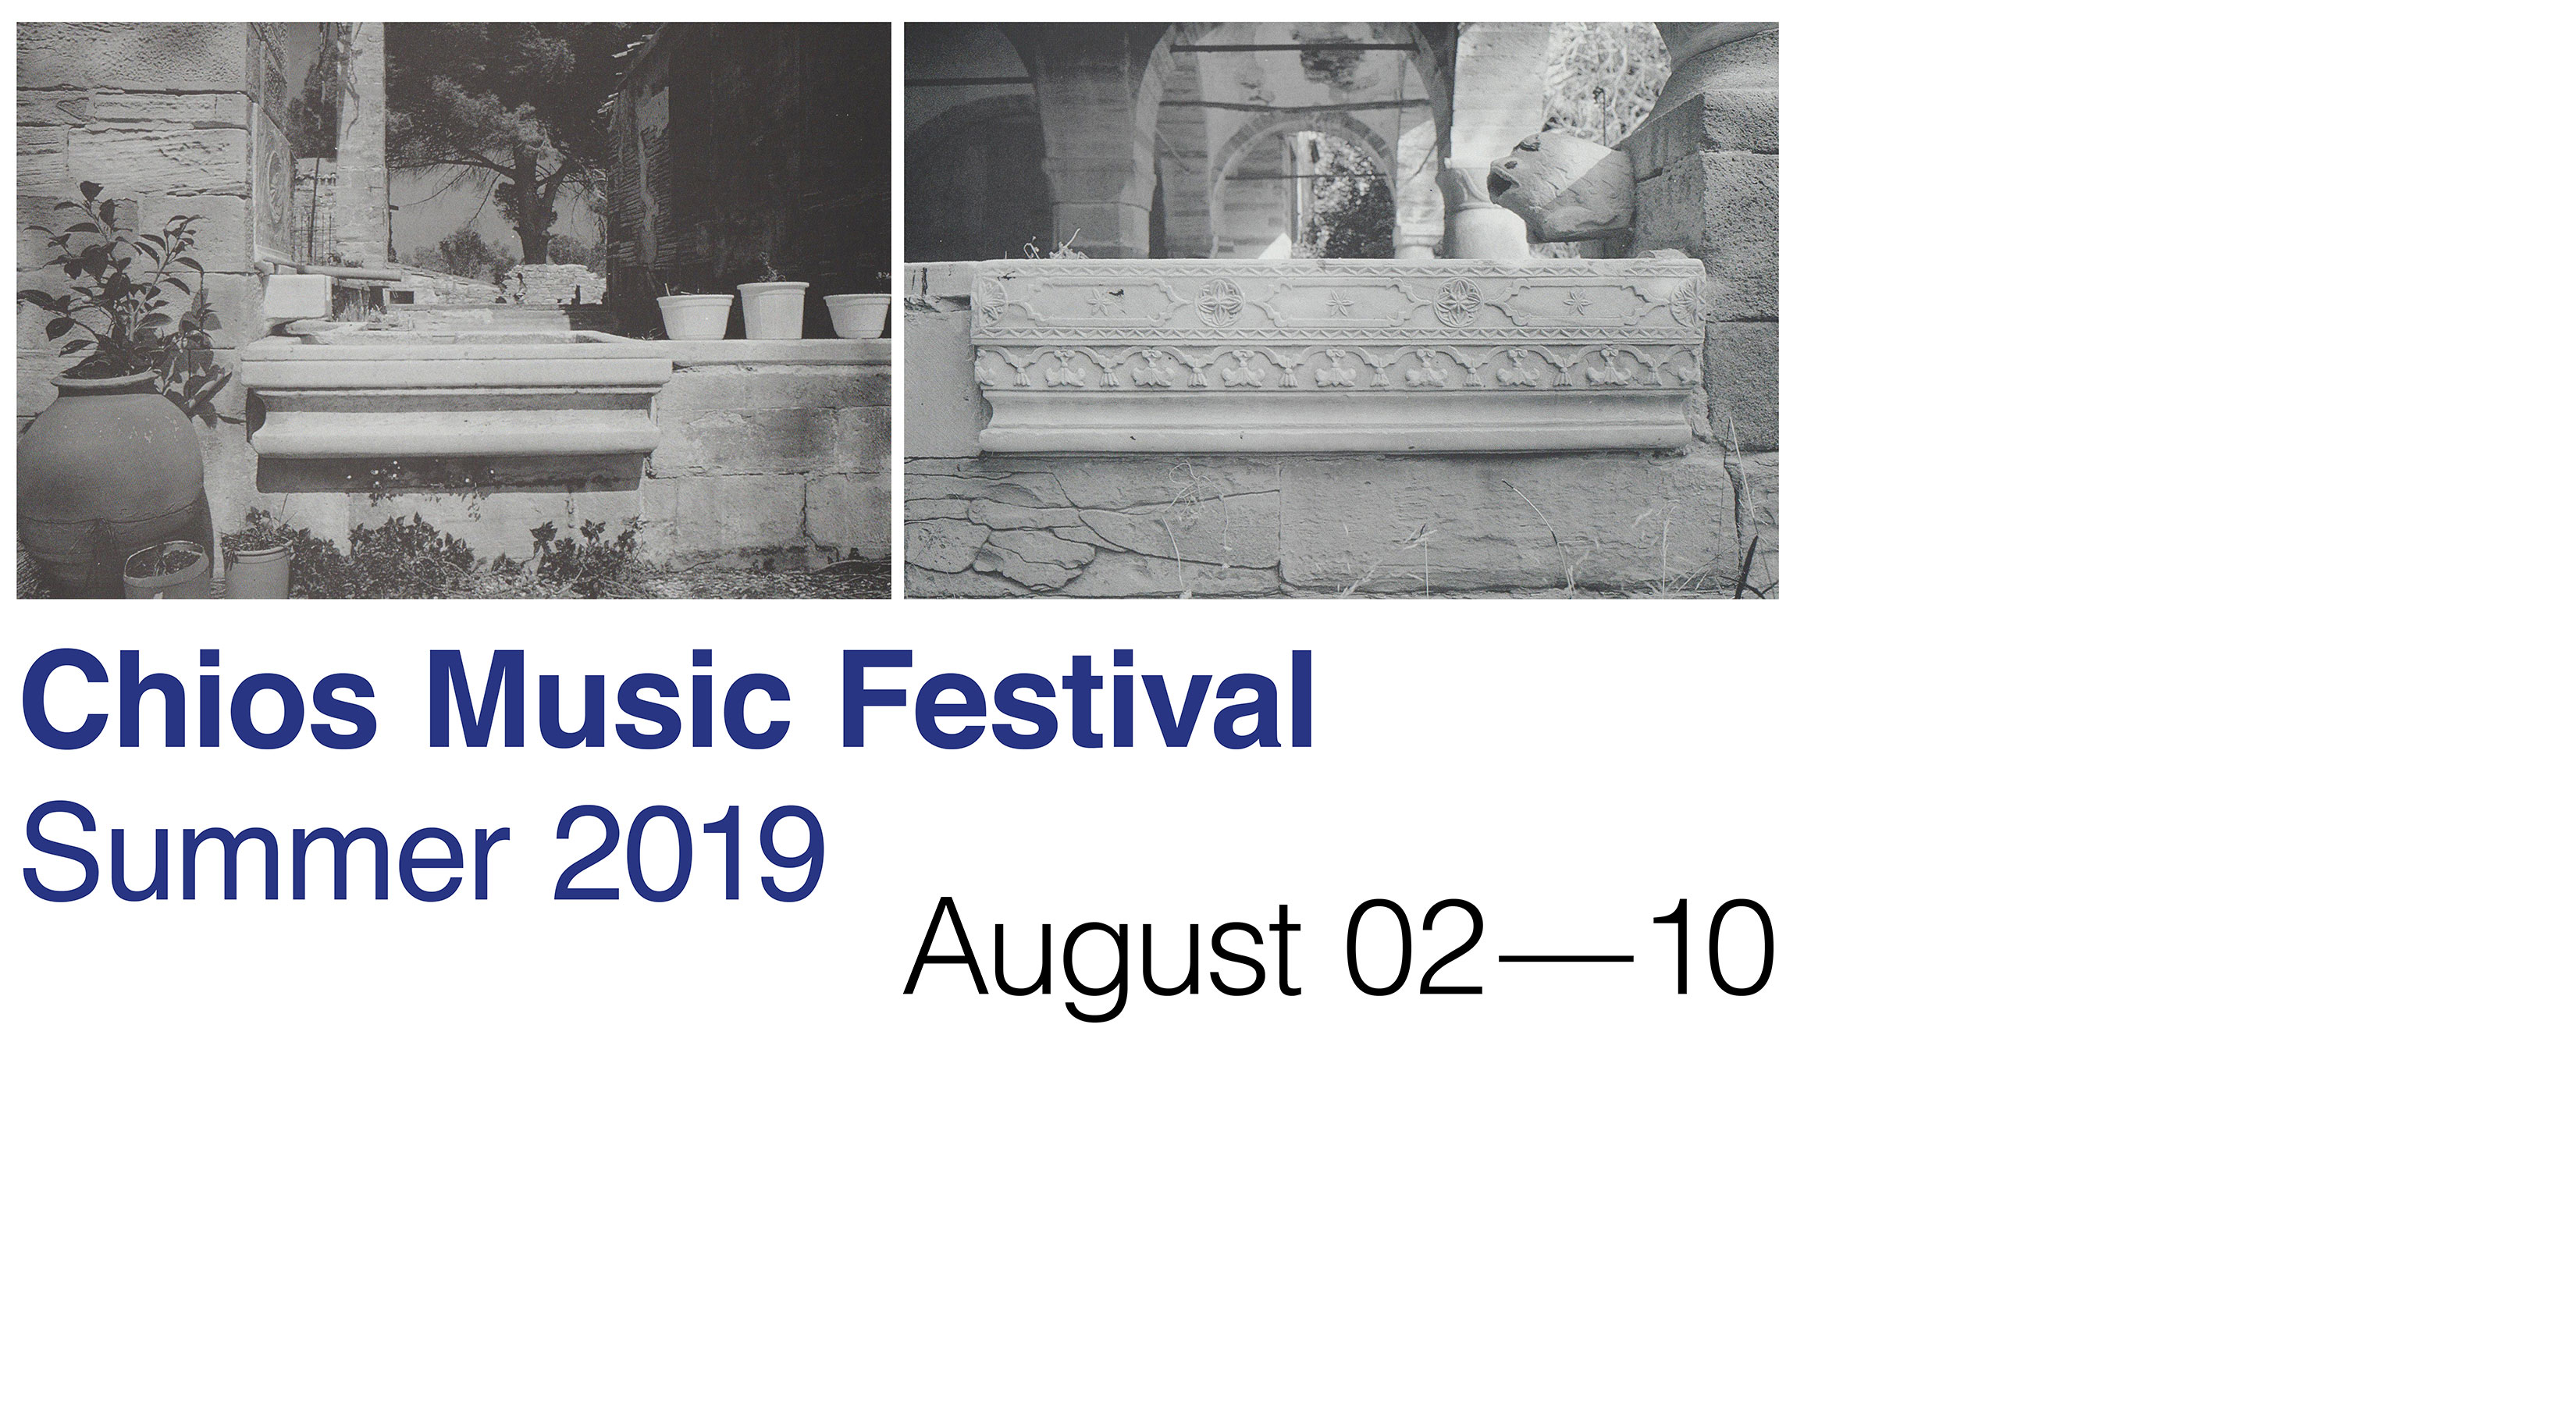 chios-music-festival summer 2019